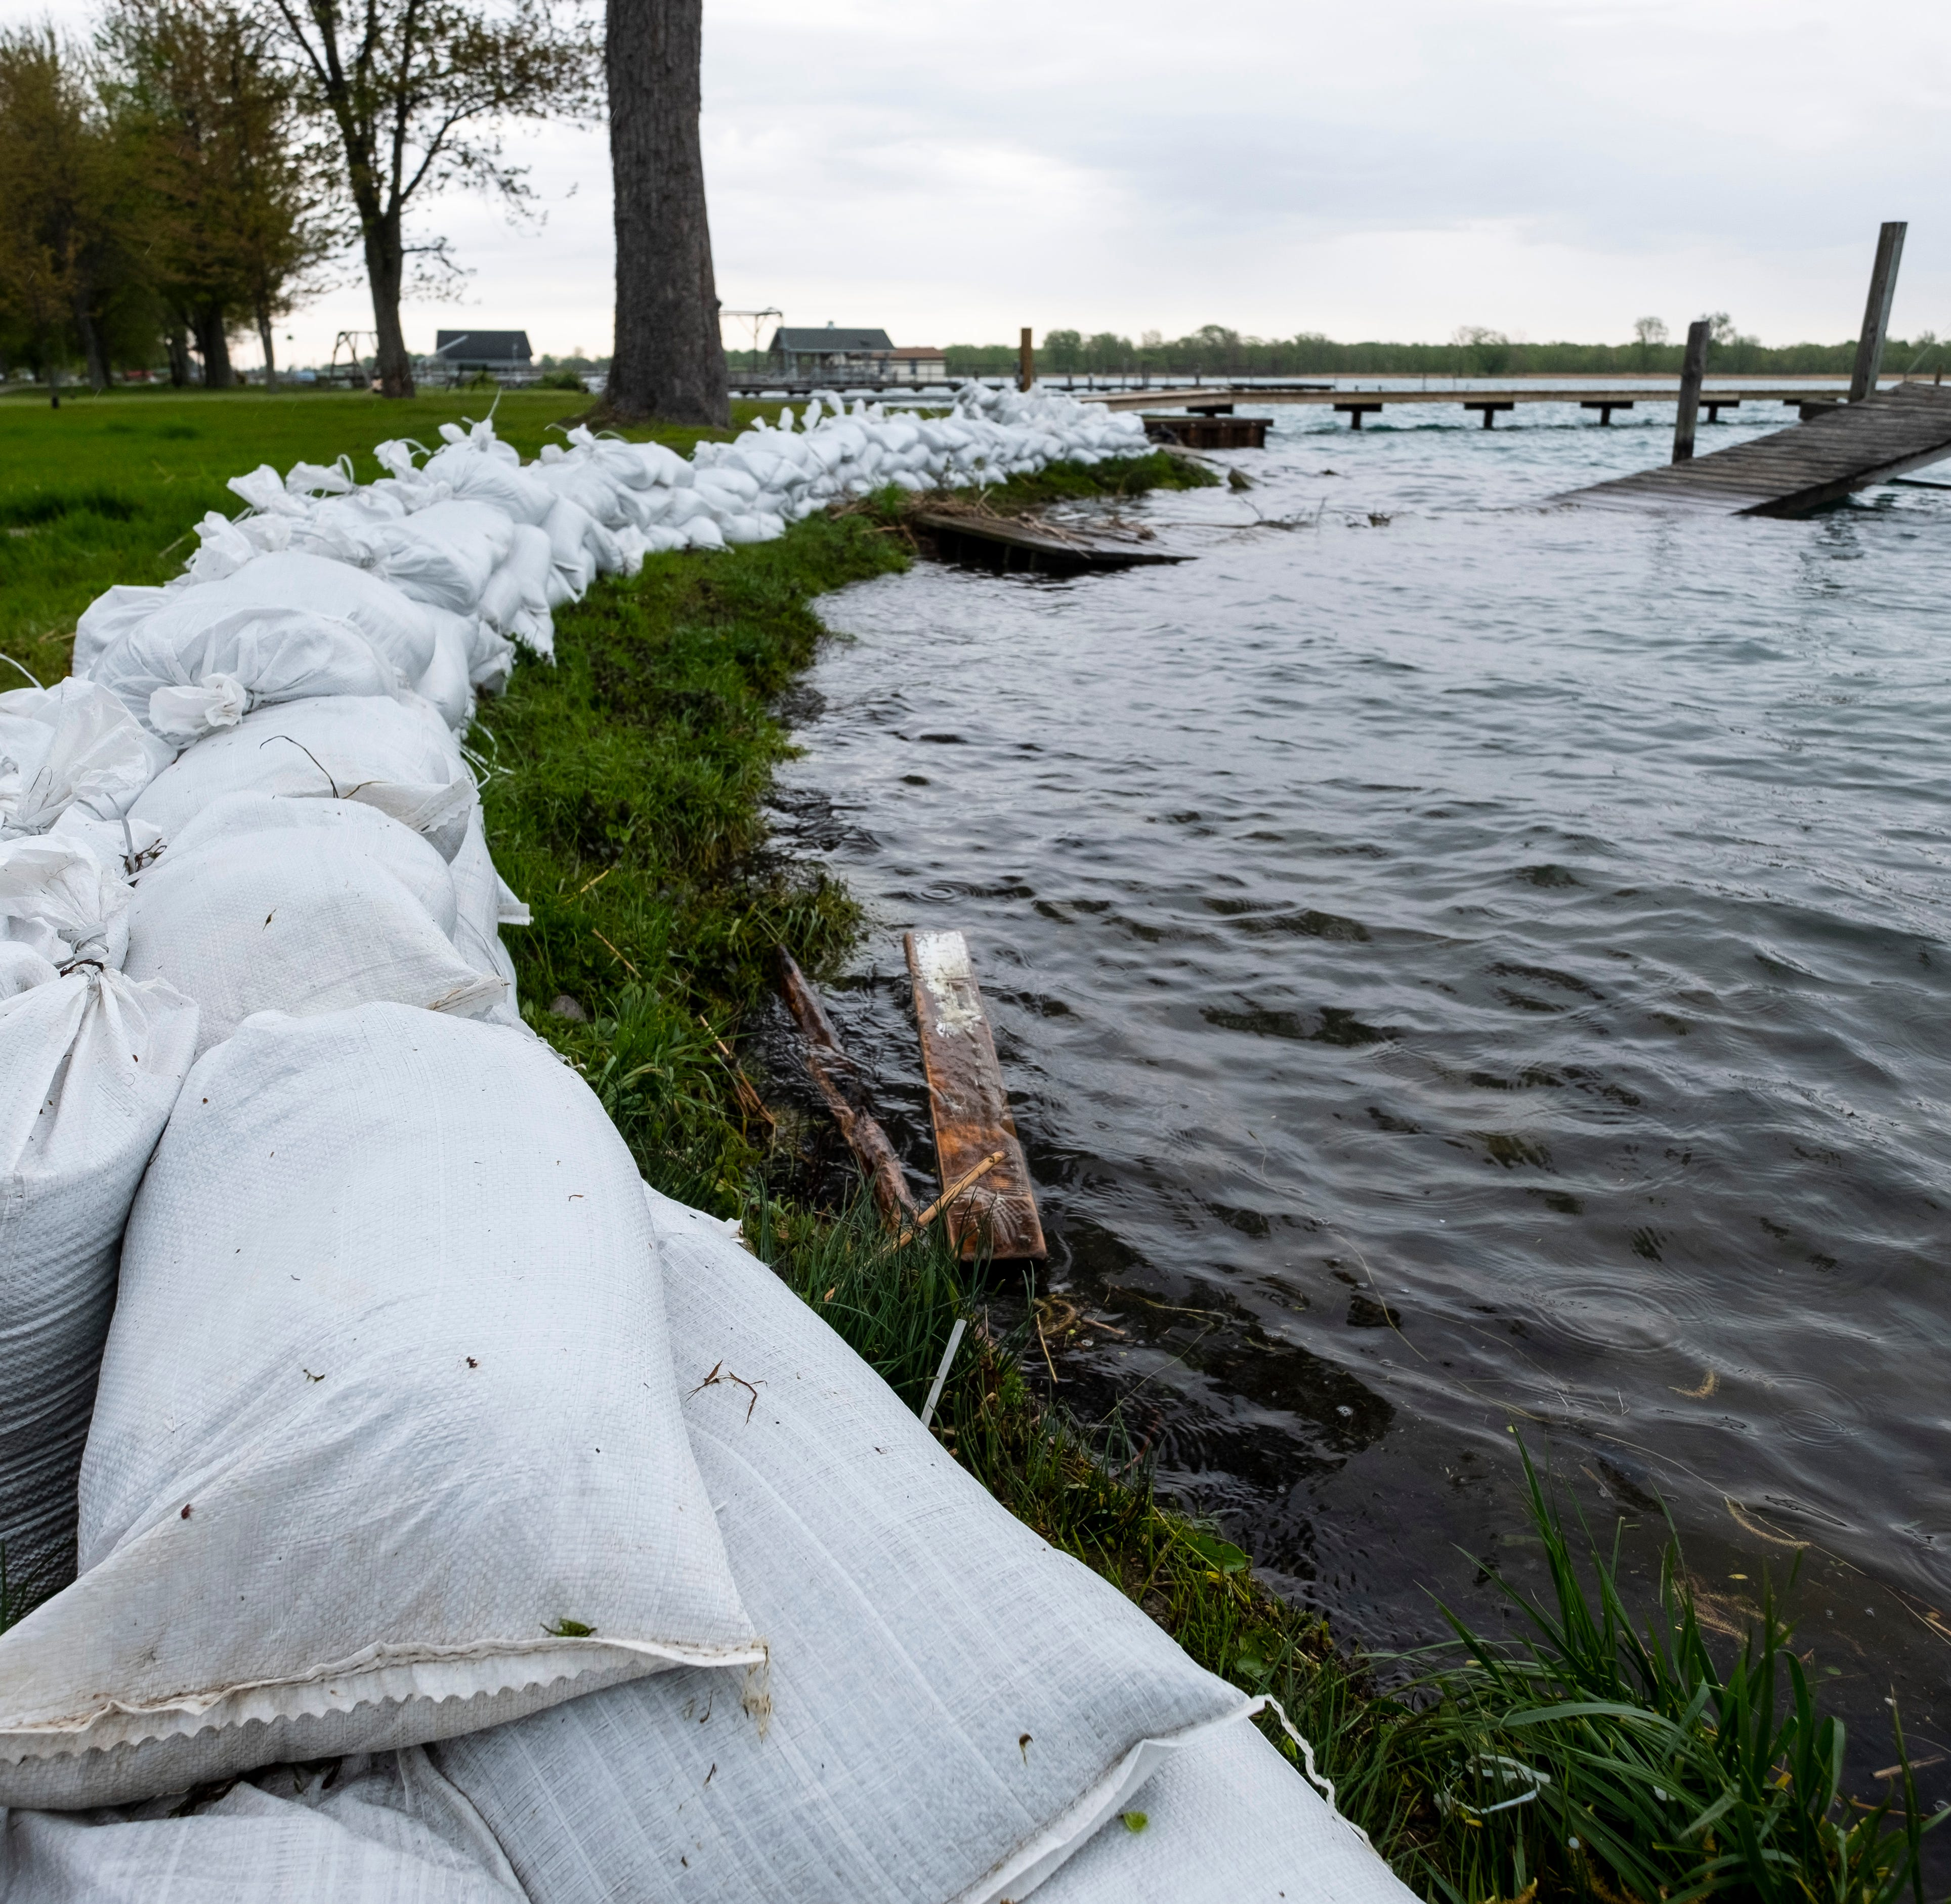 Harsens Island residents asked to limit water usage in face of rising water levels